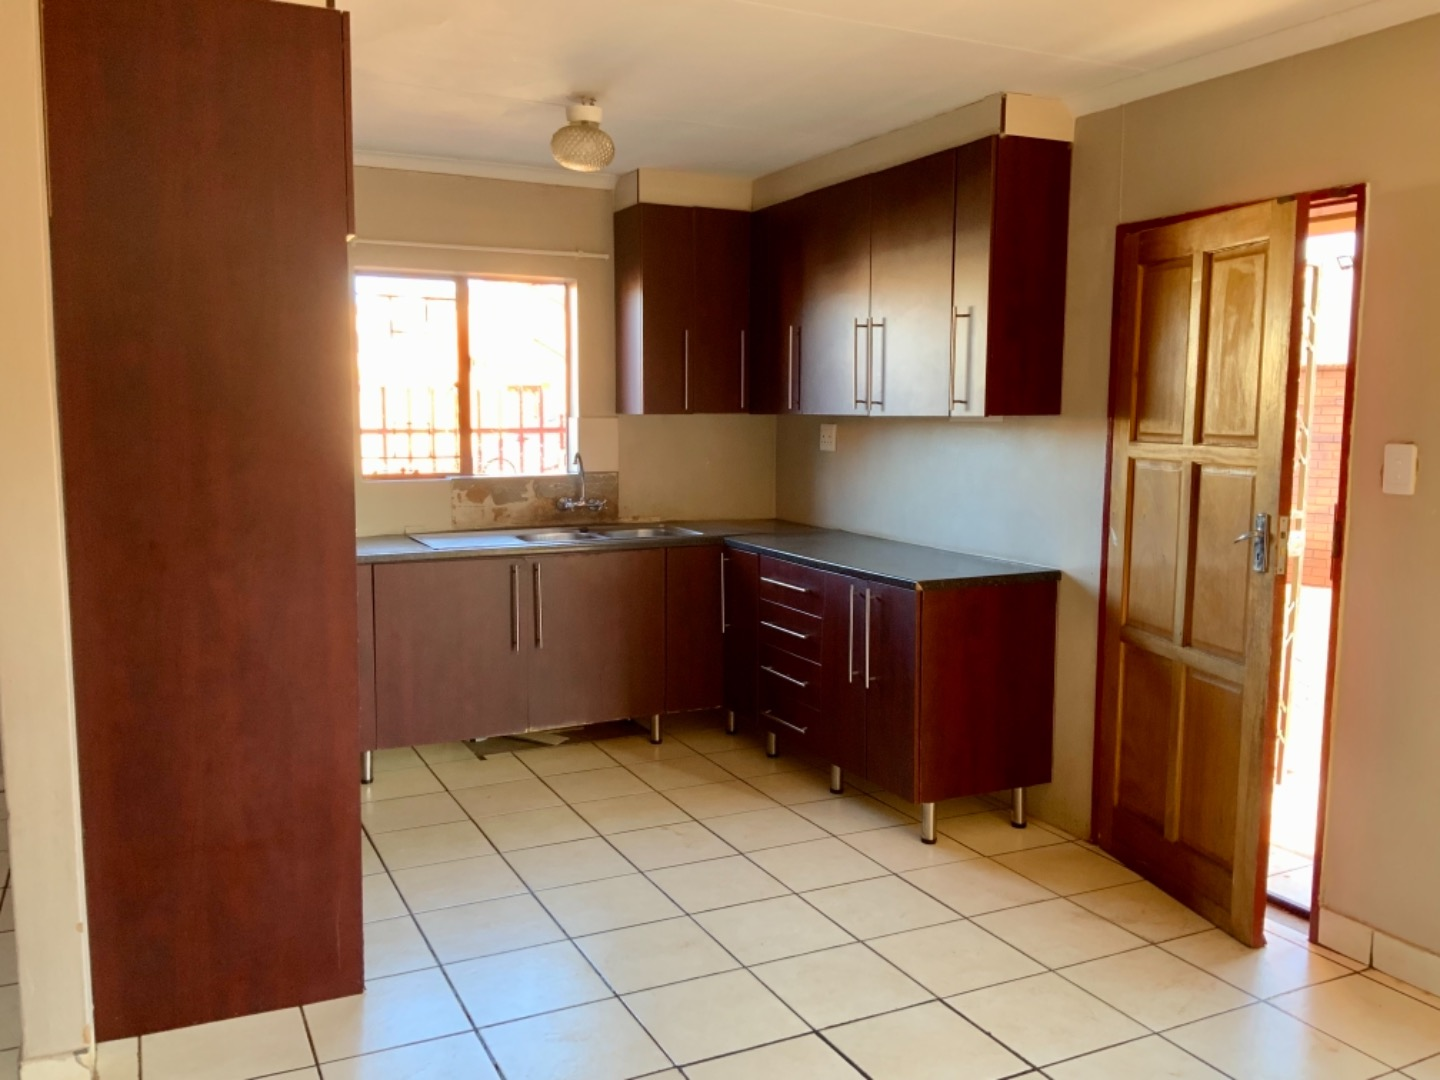 3 Bedroom House To Rent in The Orchards